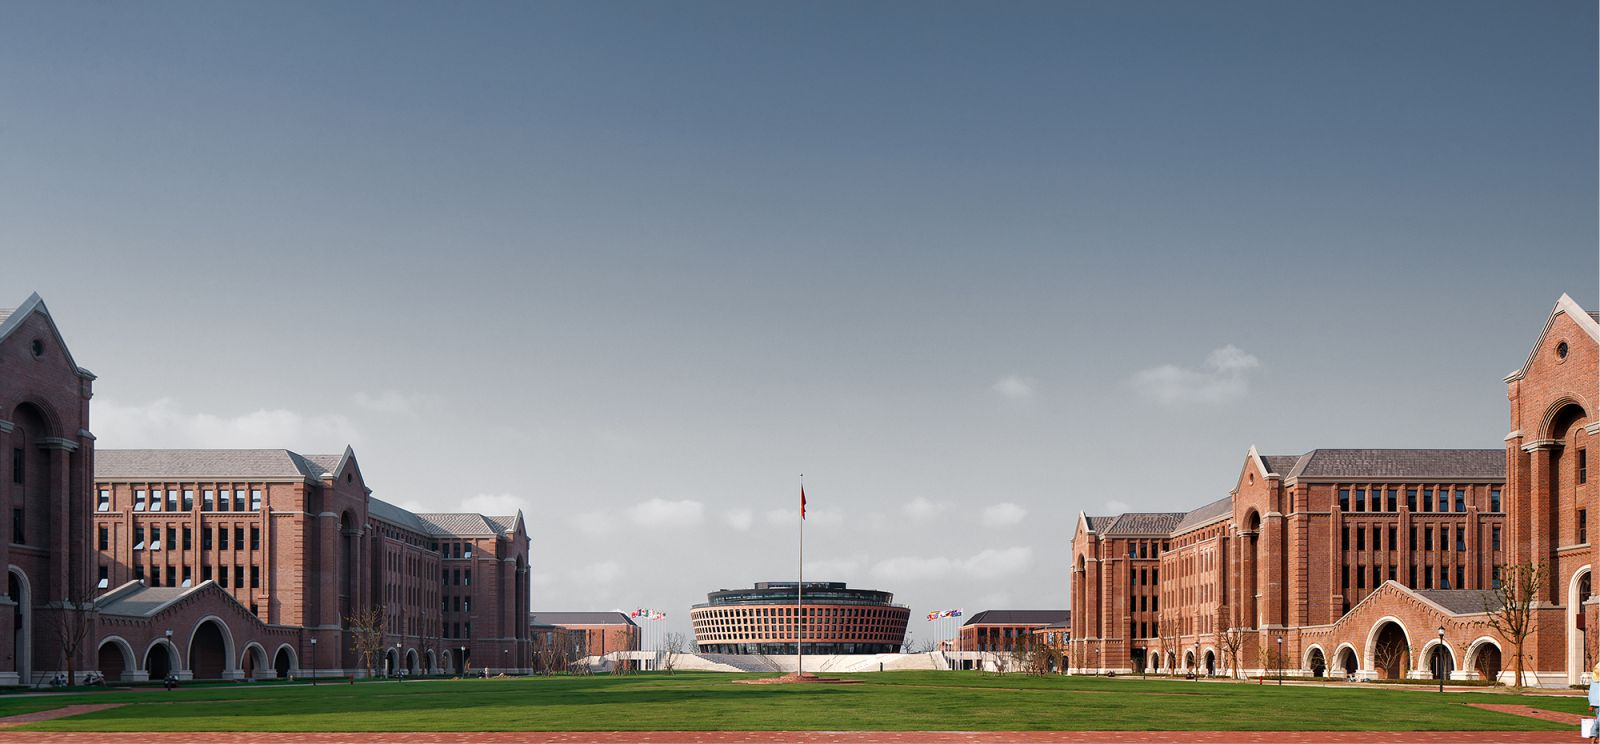 Campus of Zhejiang University